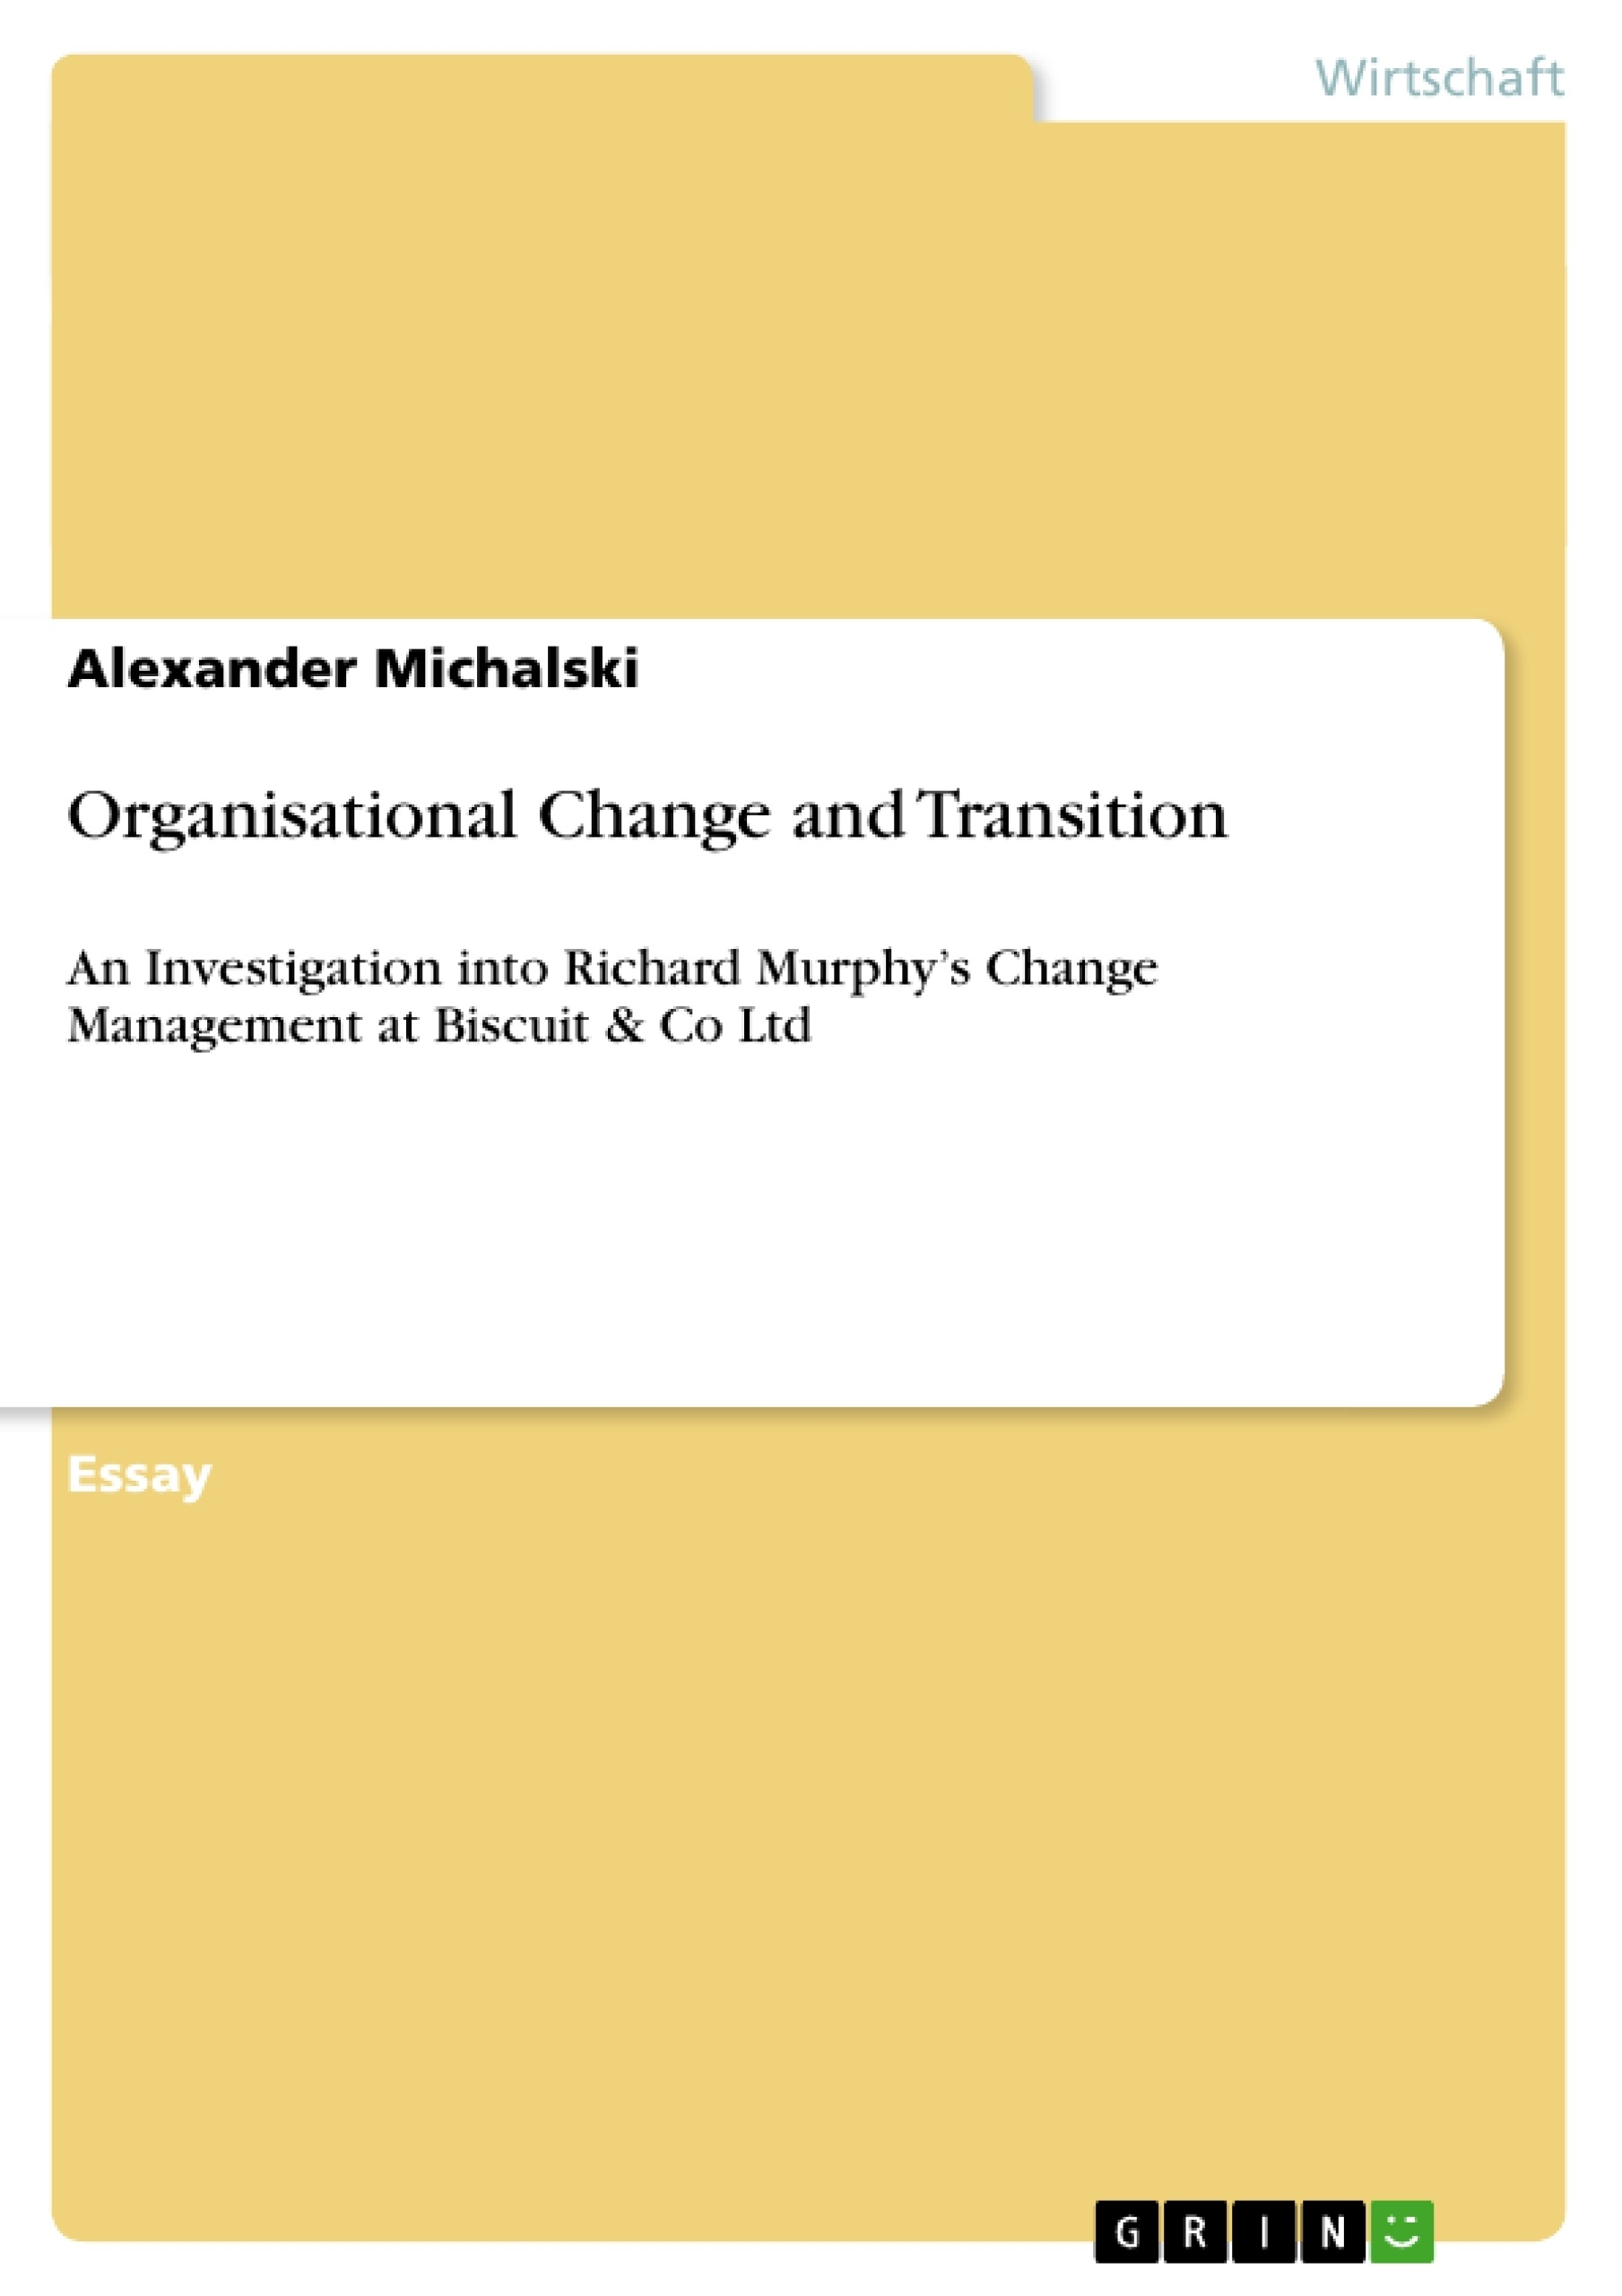 Titel: Organisational Change and Transition